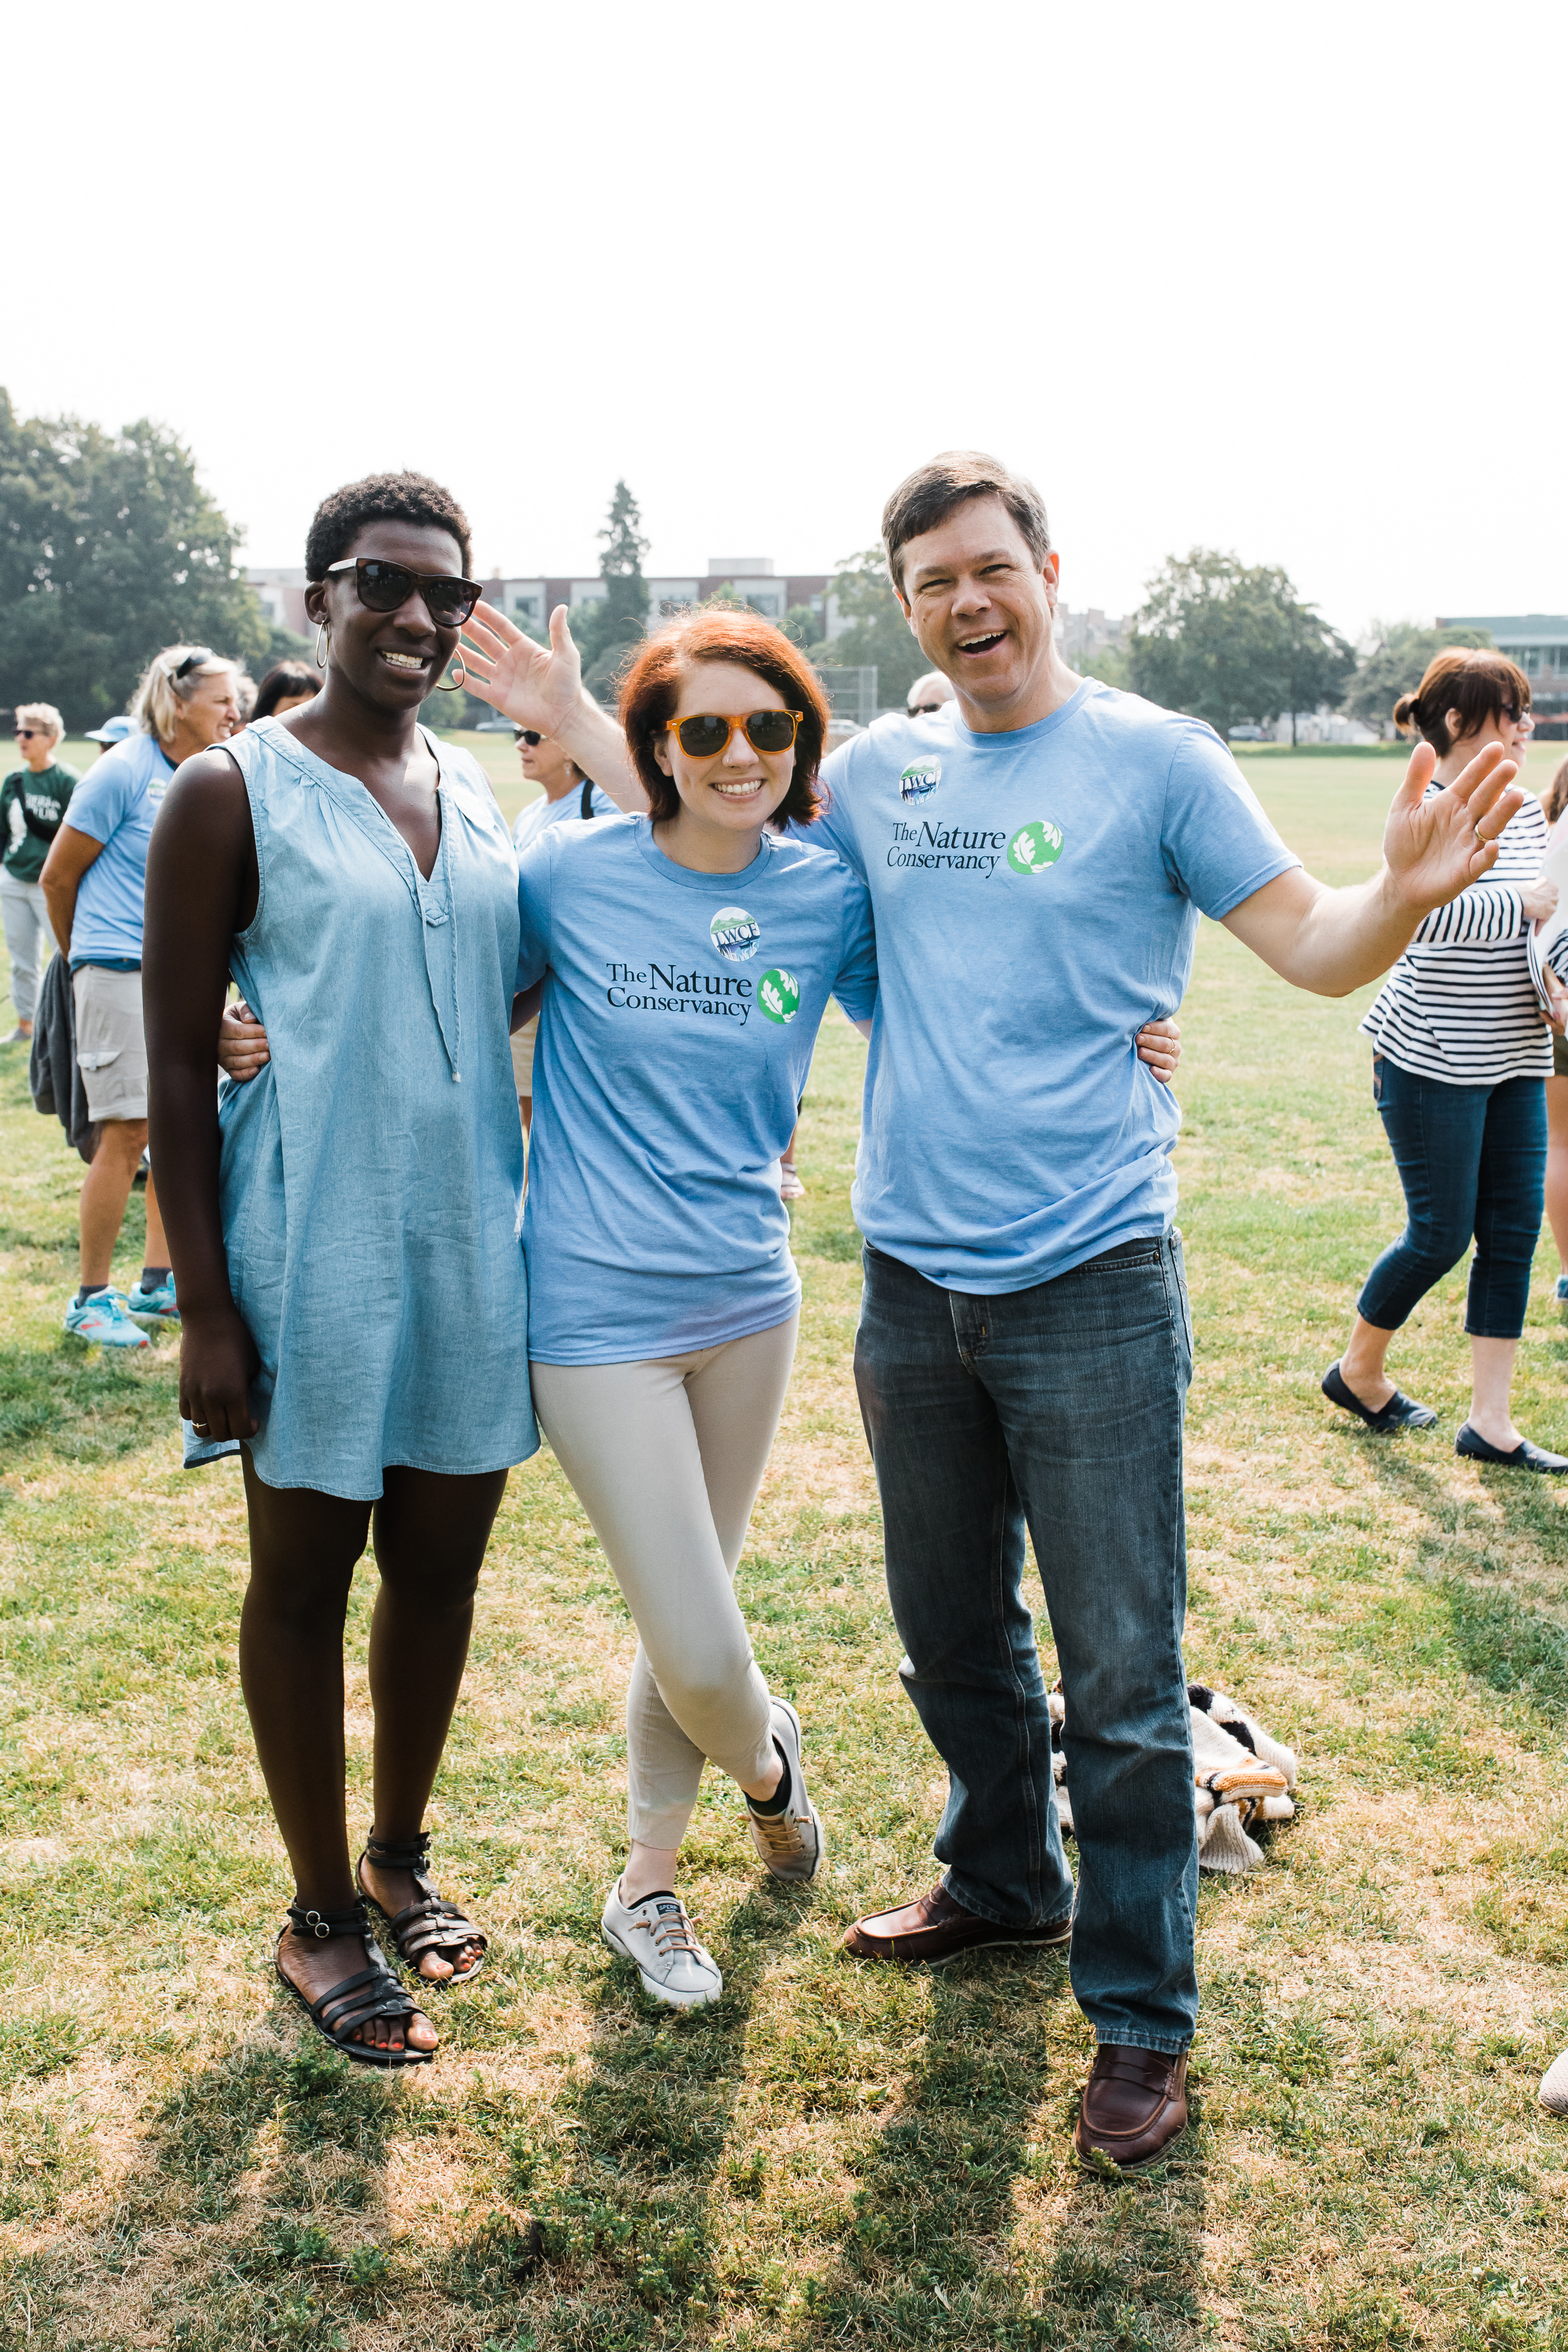 TNC staffers Iris, Courtney and Jeff are really enjoying Green Lake Park on a Monday morning. Photo by Stevie Rotella